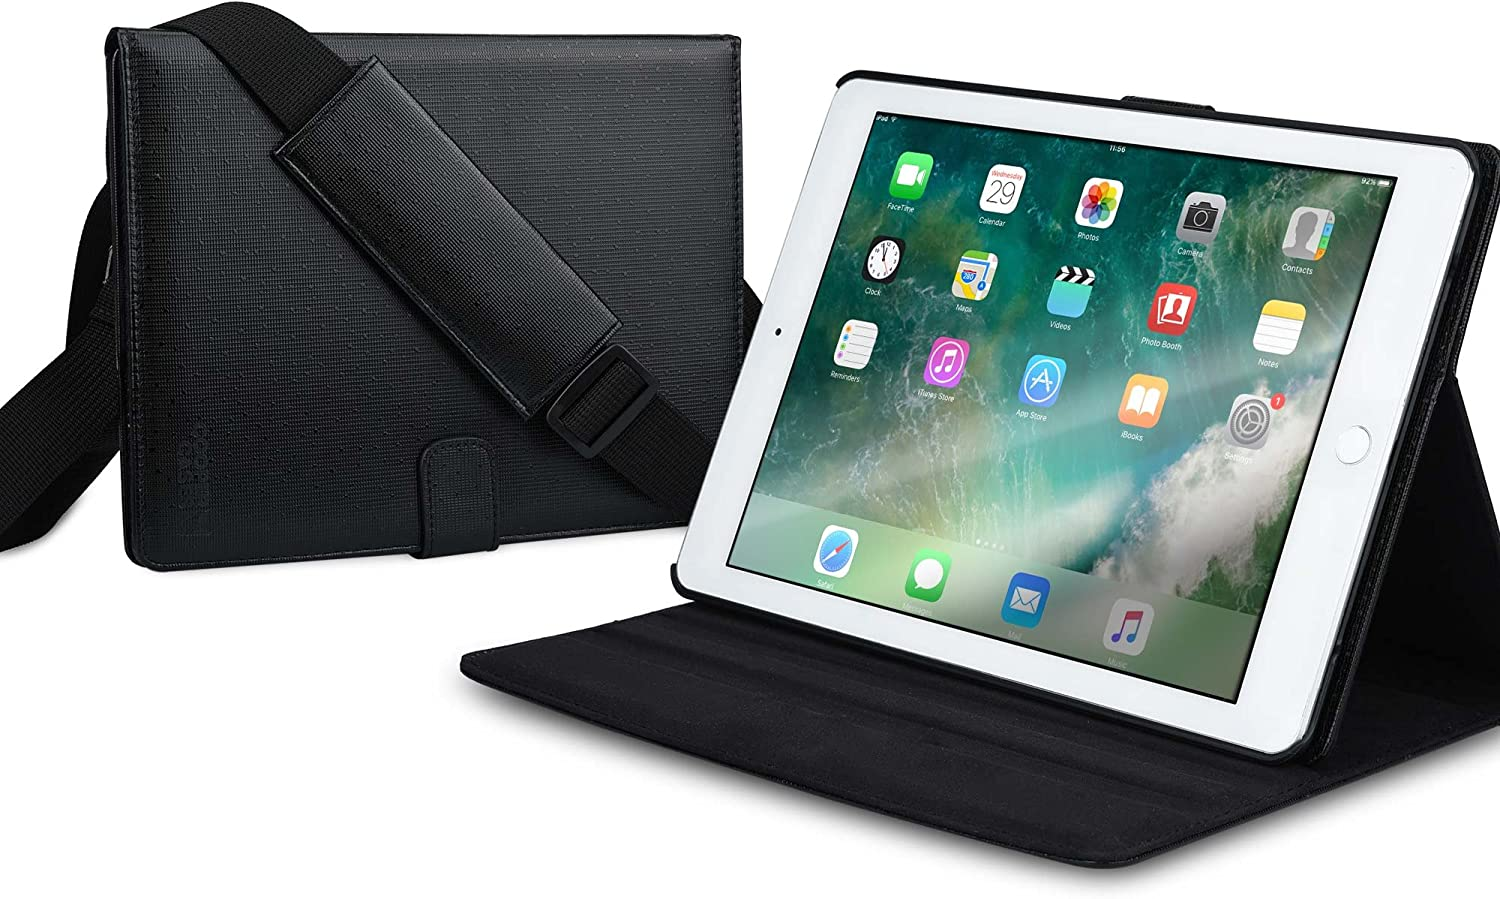 Cooper Magic Carry II Pro Case for iPad Pro 9.7, iPad Air 2 | Protective Tablet Folio Cover w/ Handle & Stand | Carrying Case for Business School Travel | A1673 A1674 A1566 A1567 (Black)